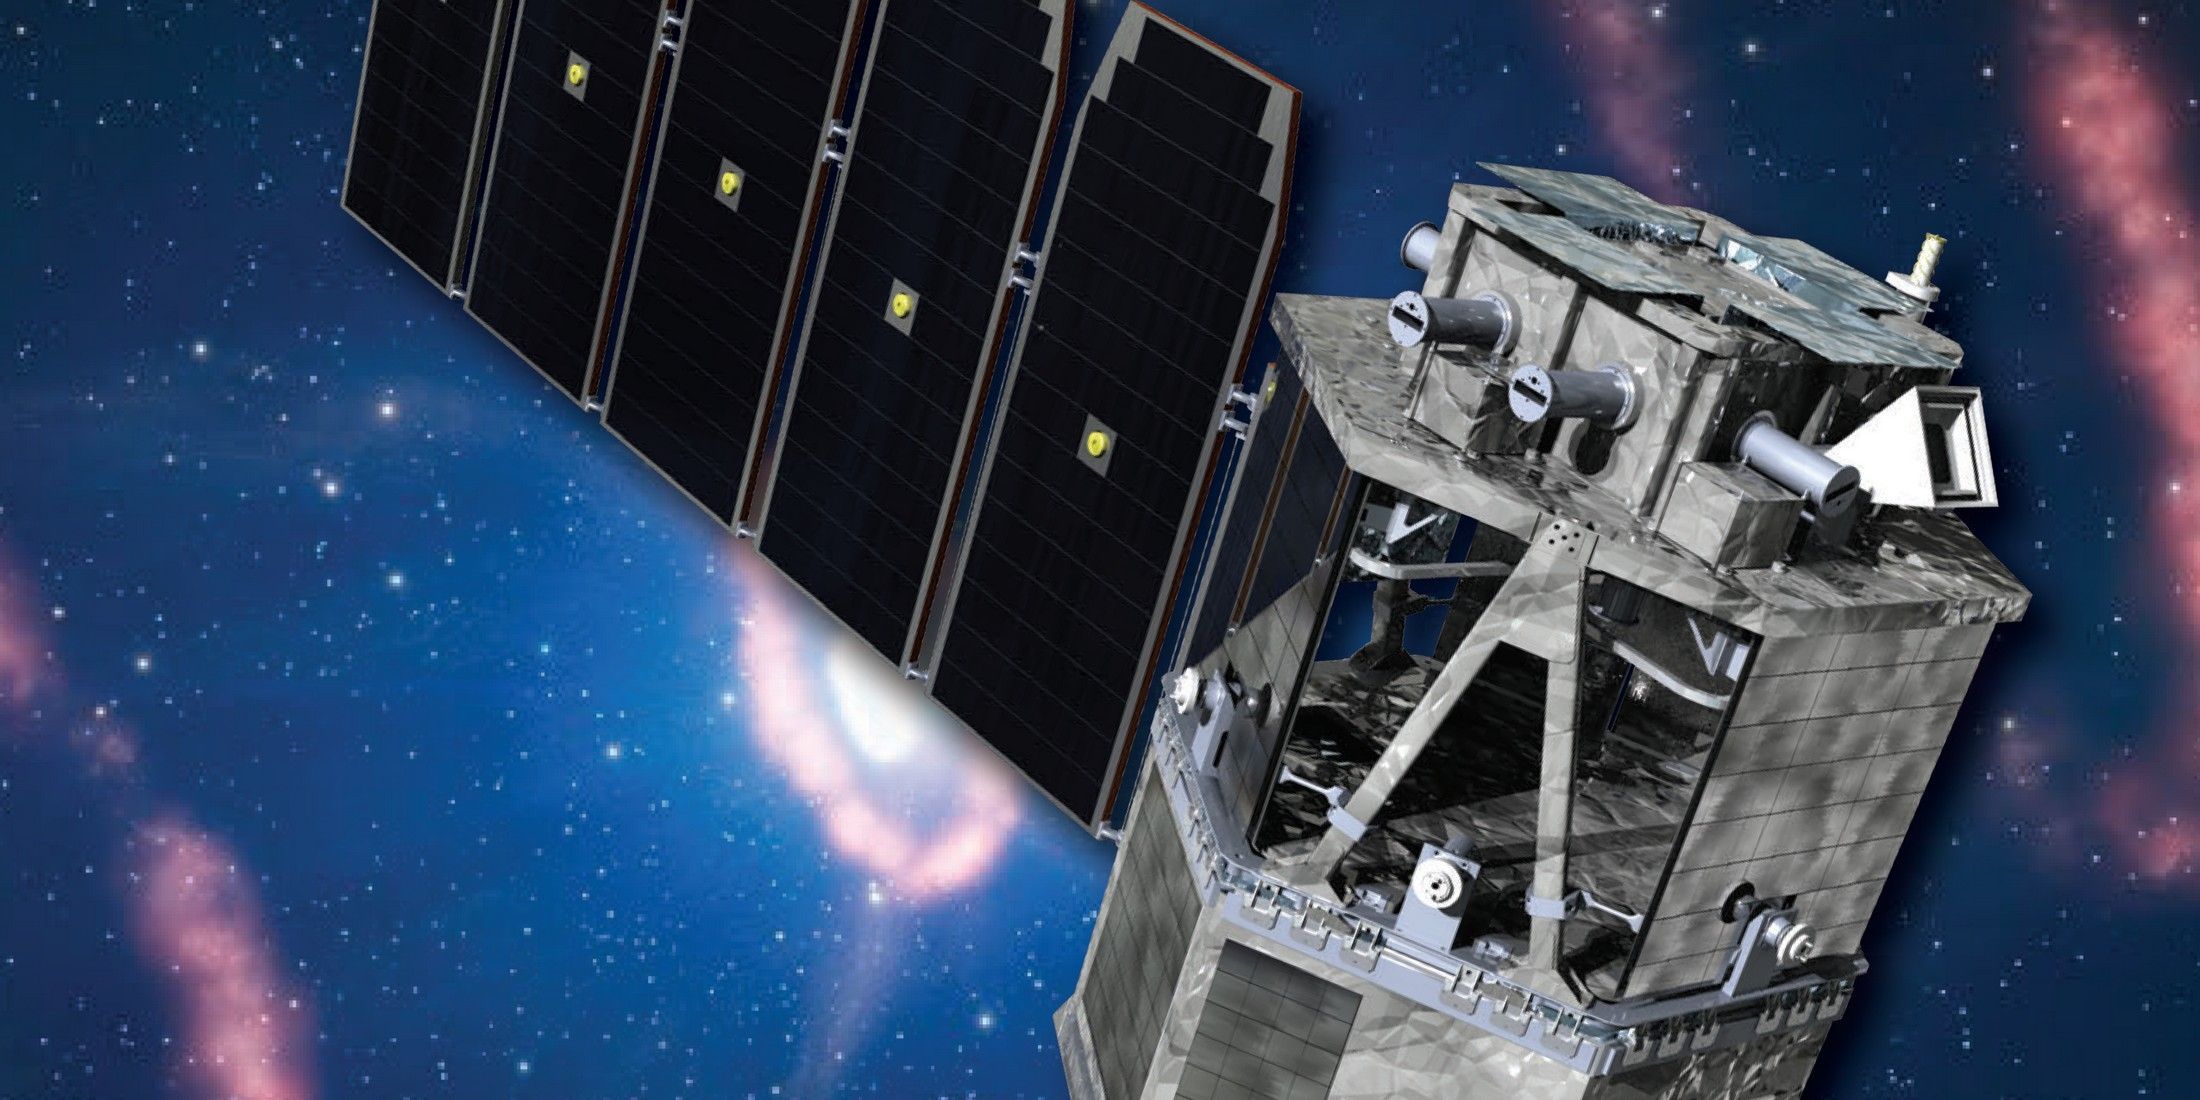 NASA's Approves New Space Telescope To Study Chemical In The Milky Way